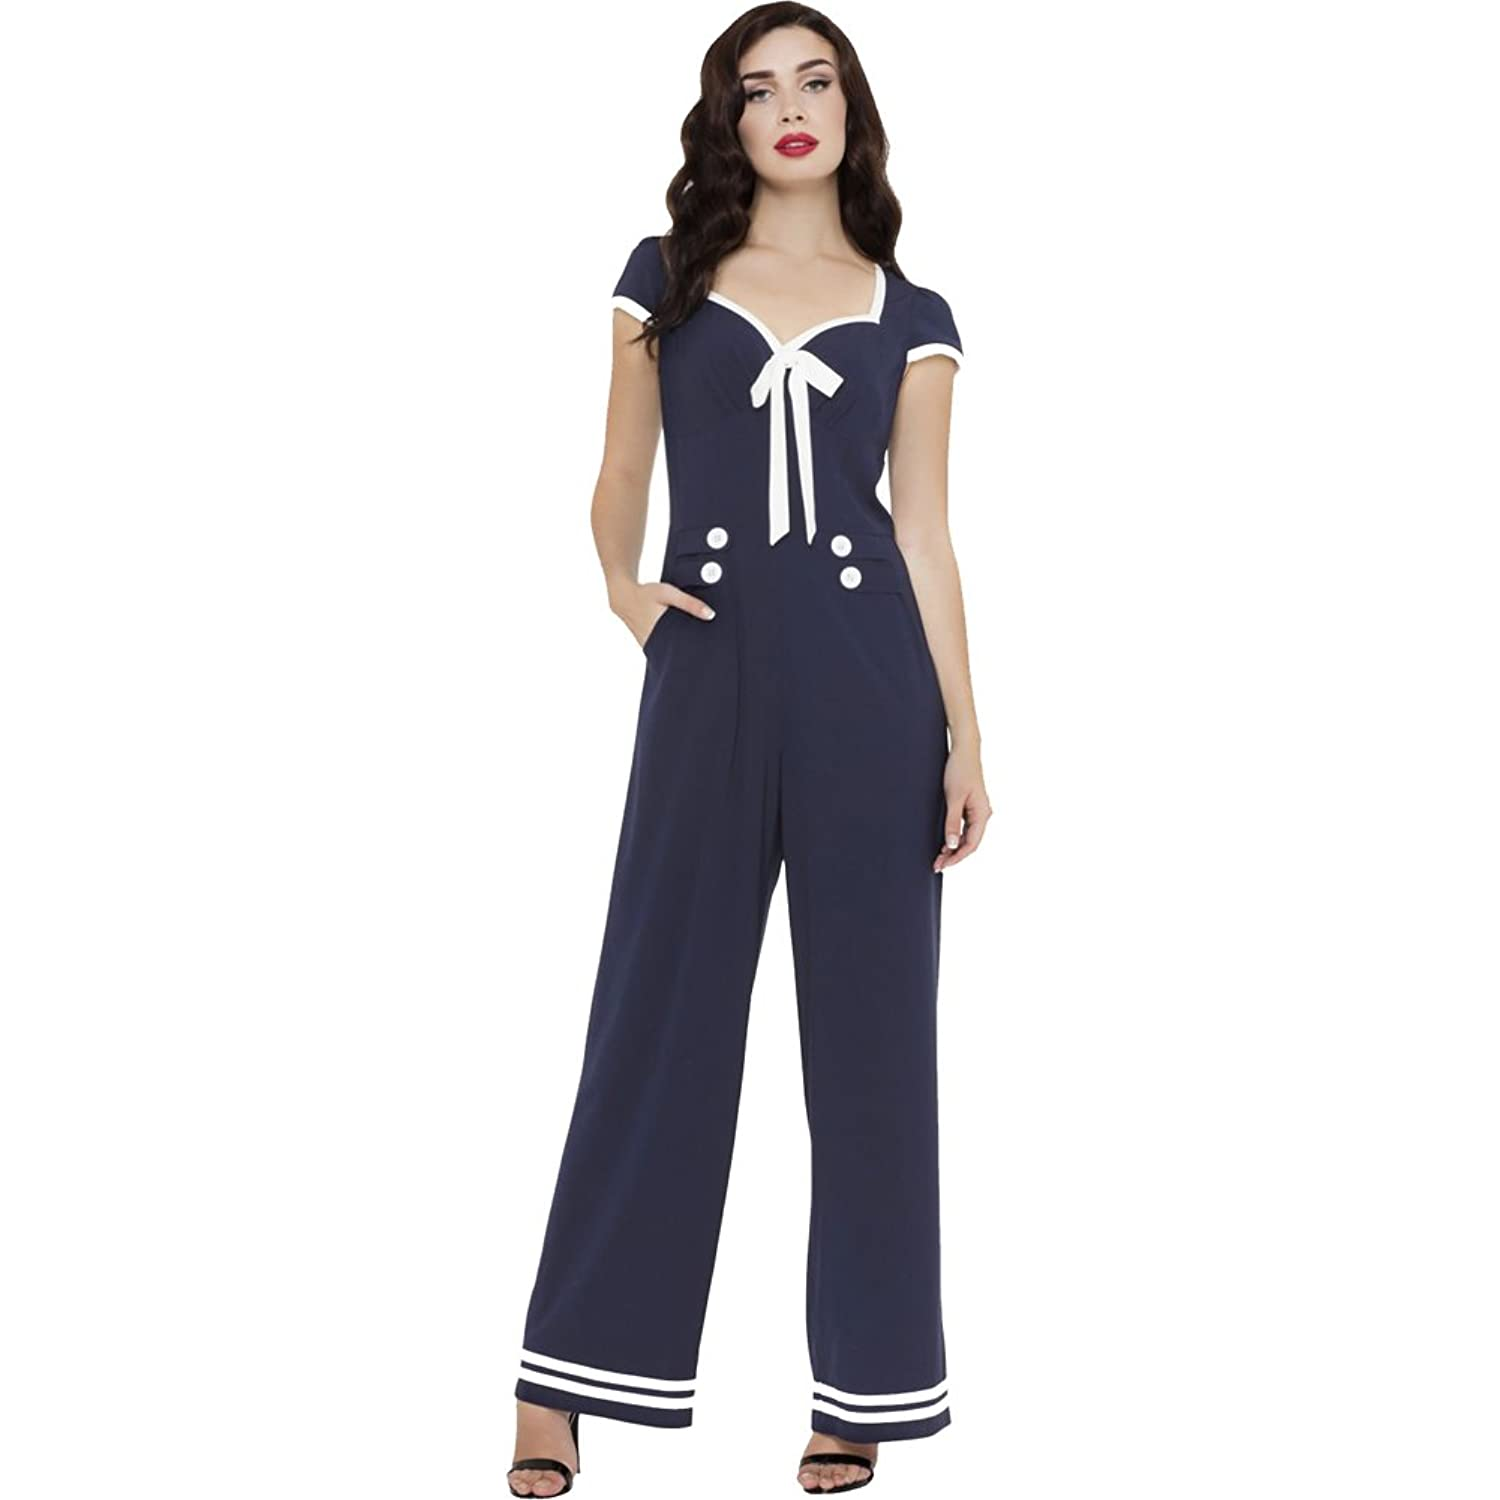 Sailor Dresses, Nautical Theme Dress, WW2 Dresses Womens Voodoo Vixen JOLENE Nautical Stripped Wide Leg Jumpsuit Navy $73.95 AT vintagedancer.com